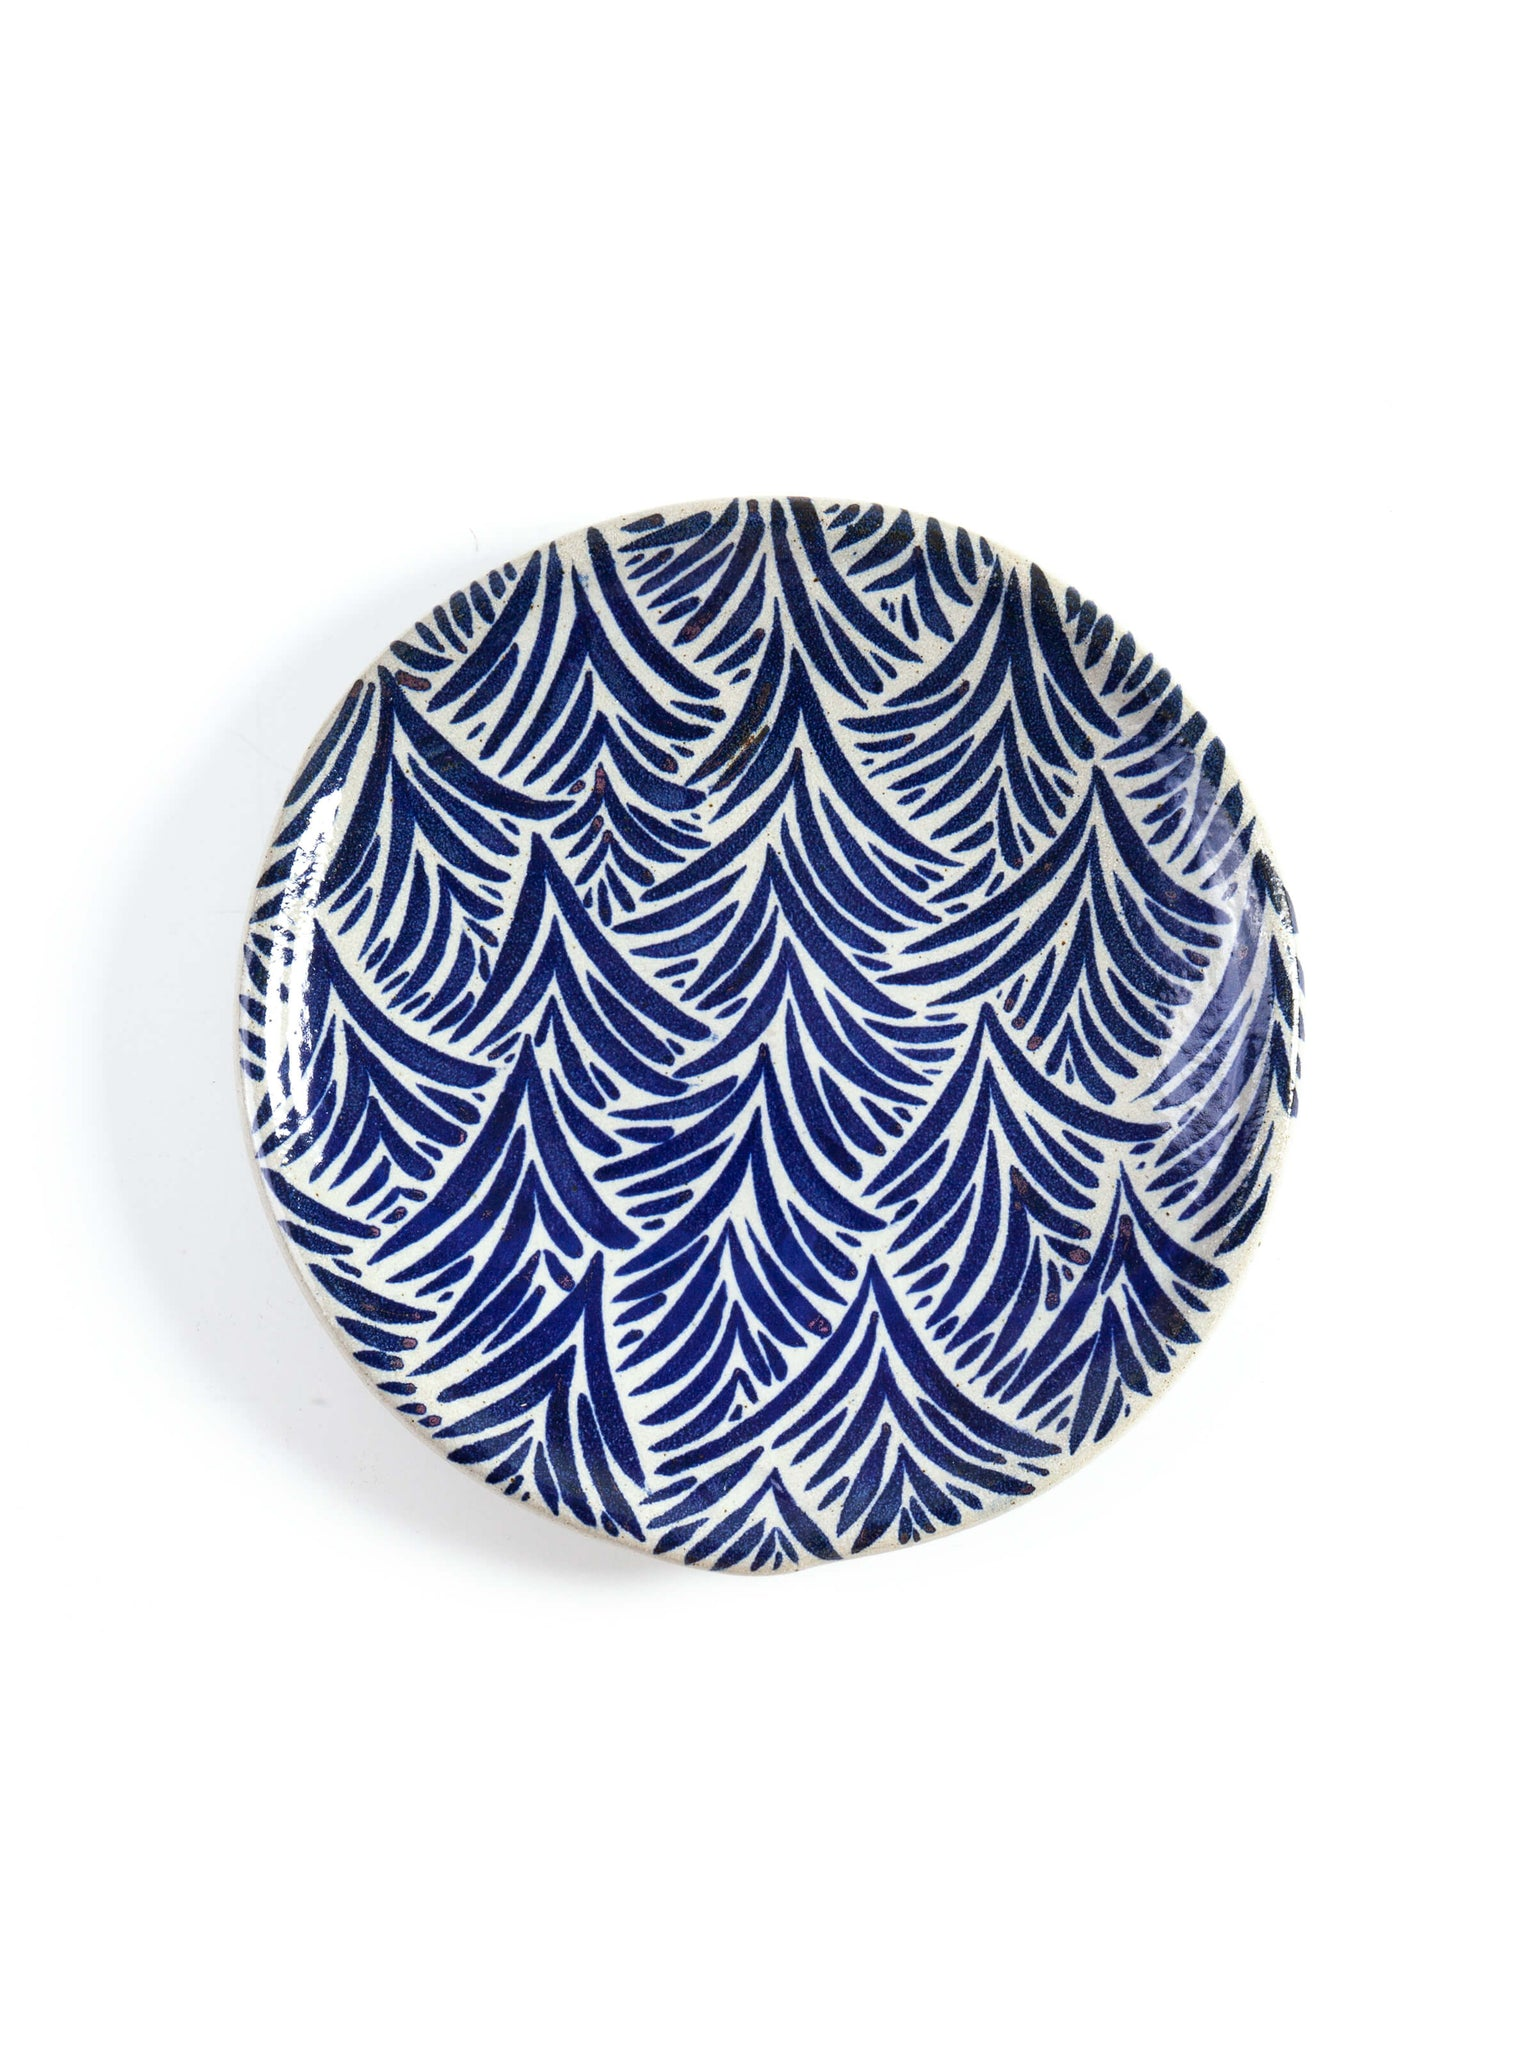 Thomas Campbell - Wave Plate #1